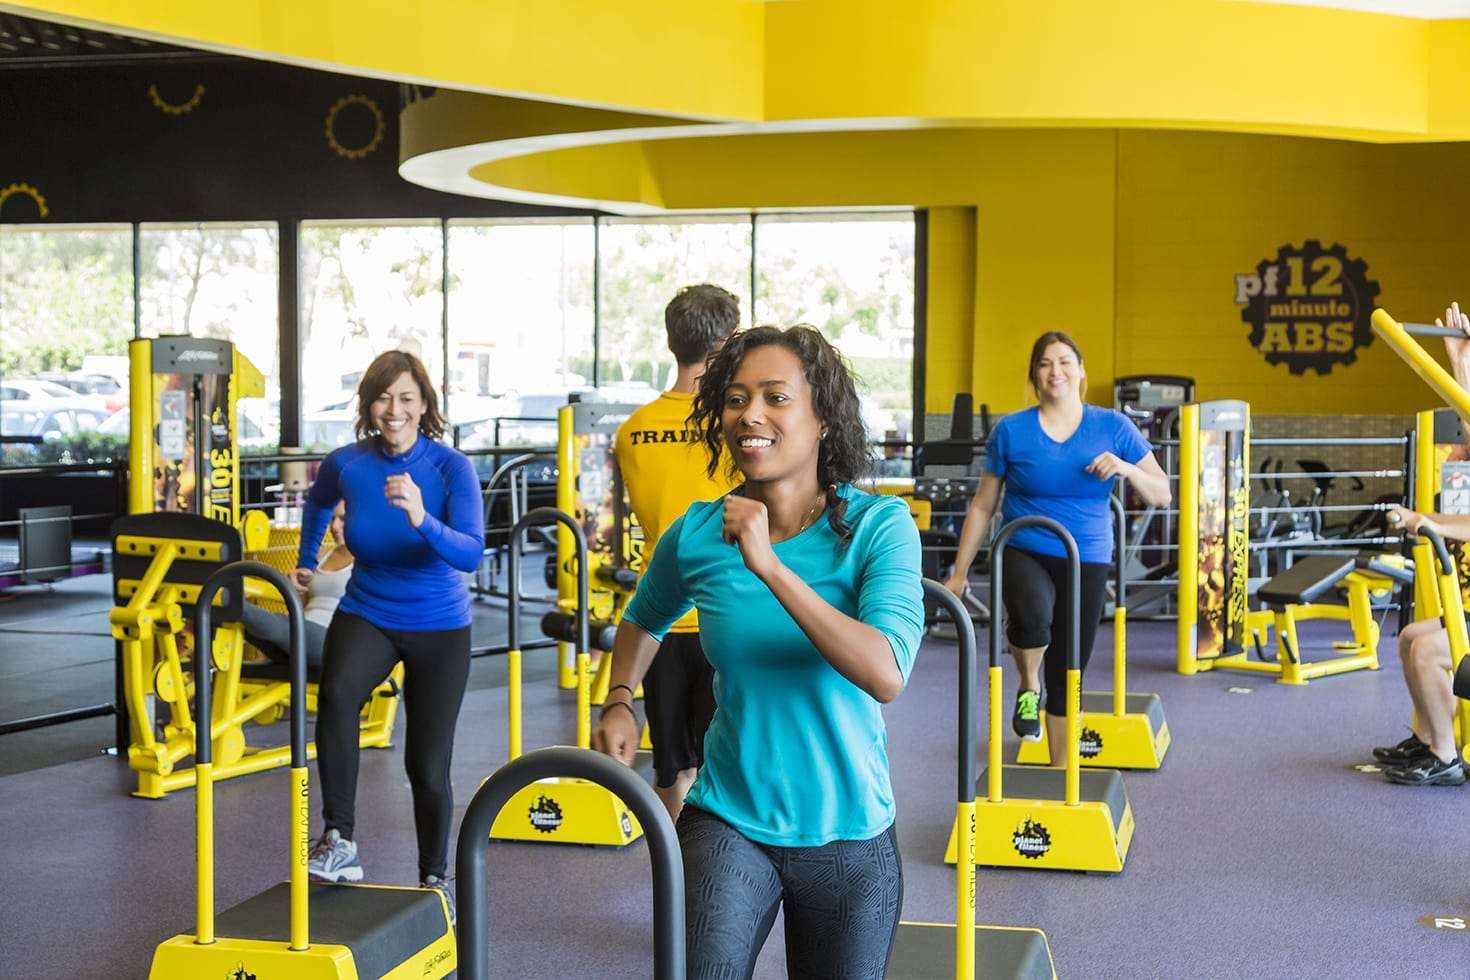 you can join planet fitness for $10/month during this special!